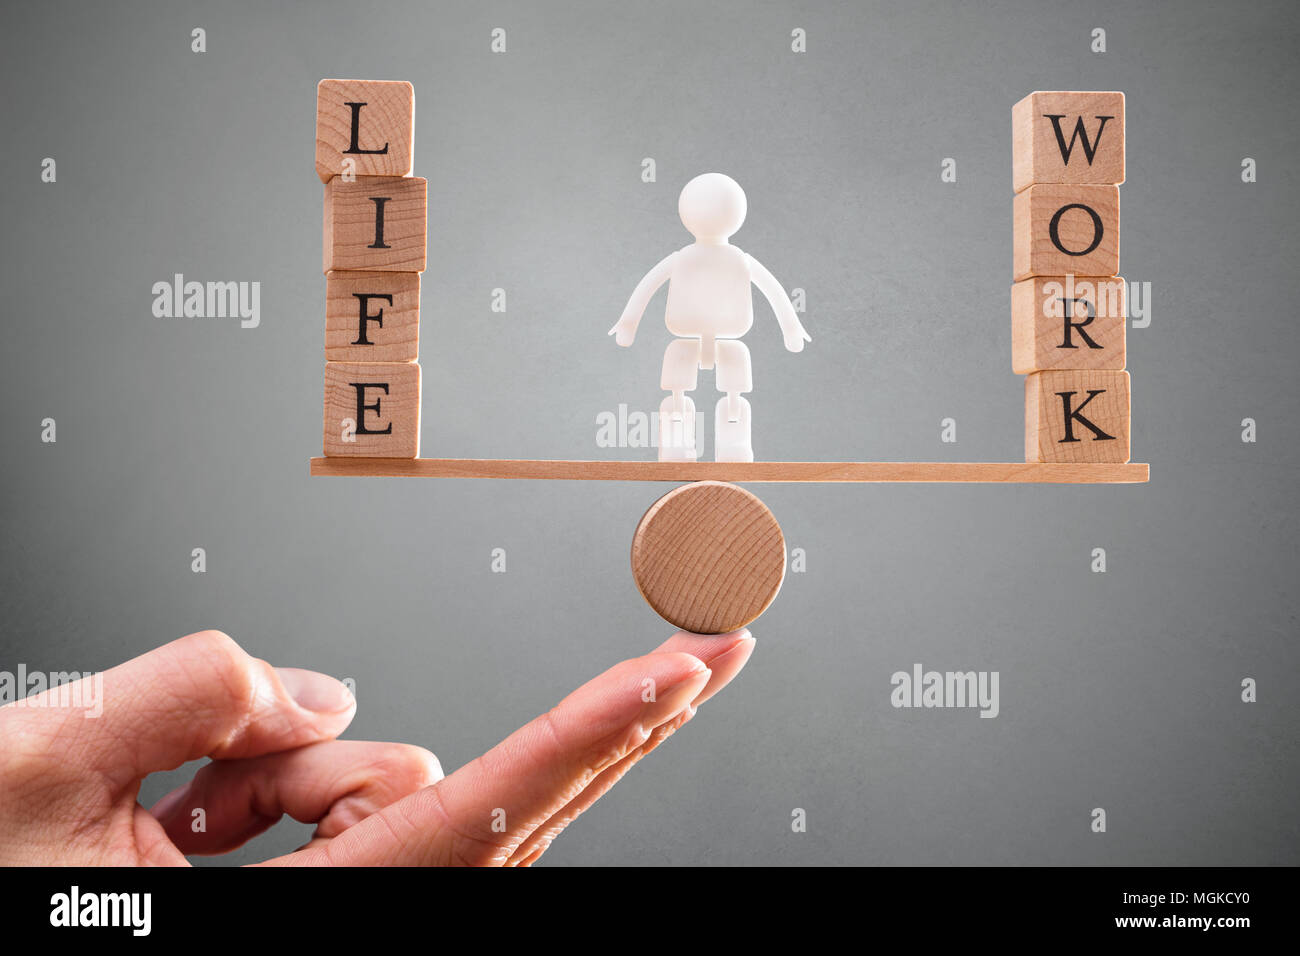 A Person's Hand With Human Figure Standing Between Work And Life Wooden Blocks On Seesaw - Stock Image